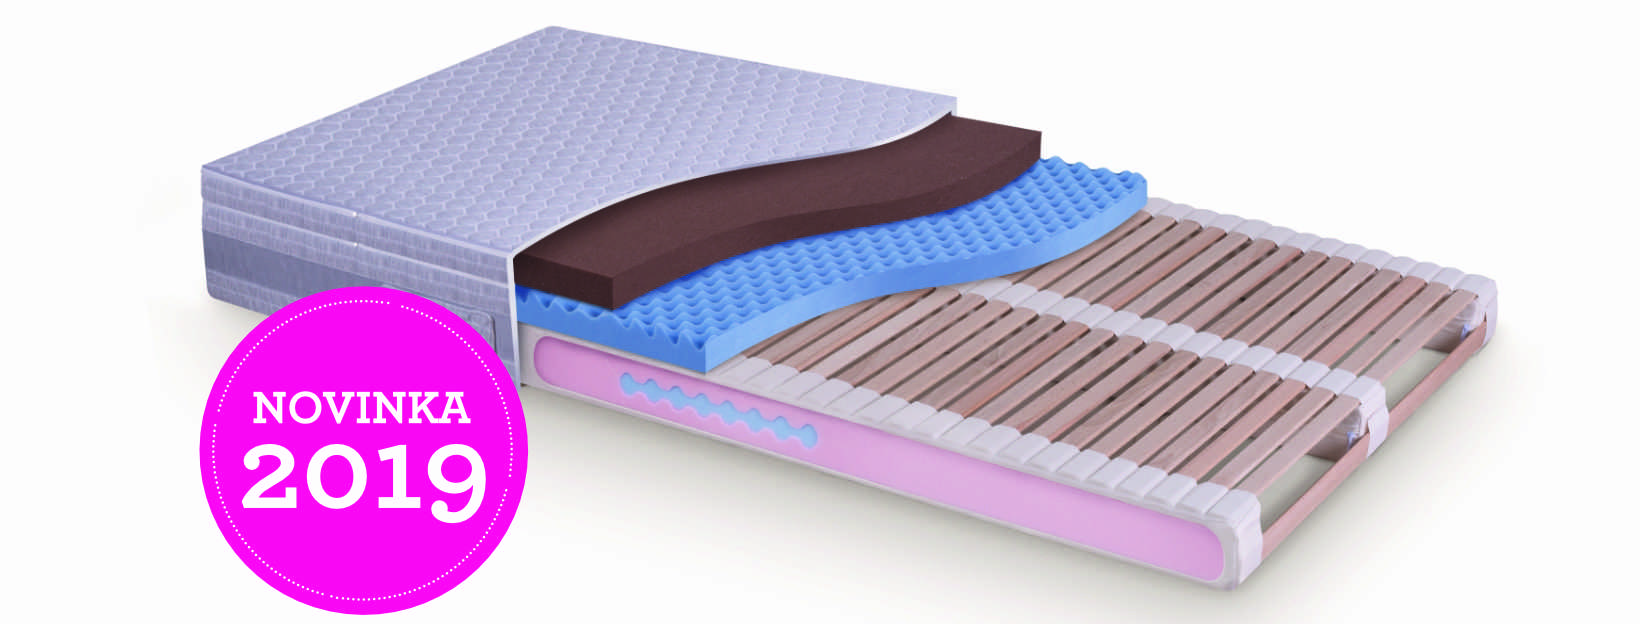 Are you looking for an orthopedic mattress? A novelty is SARA SPIRIT